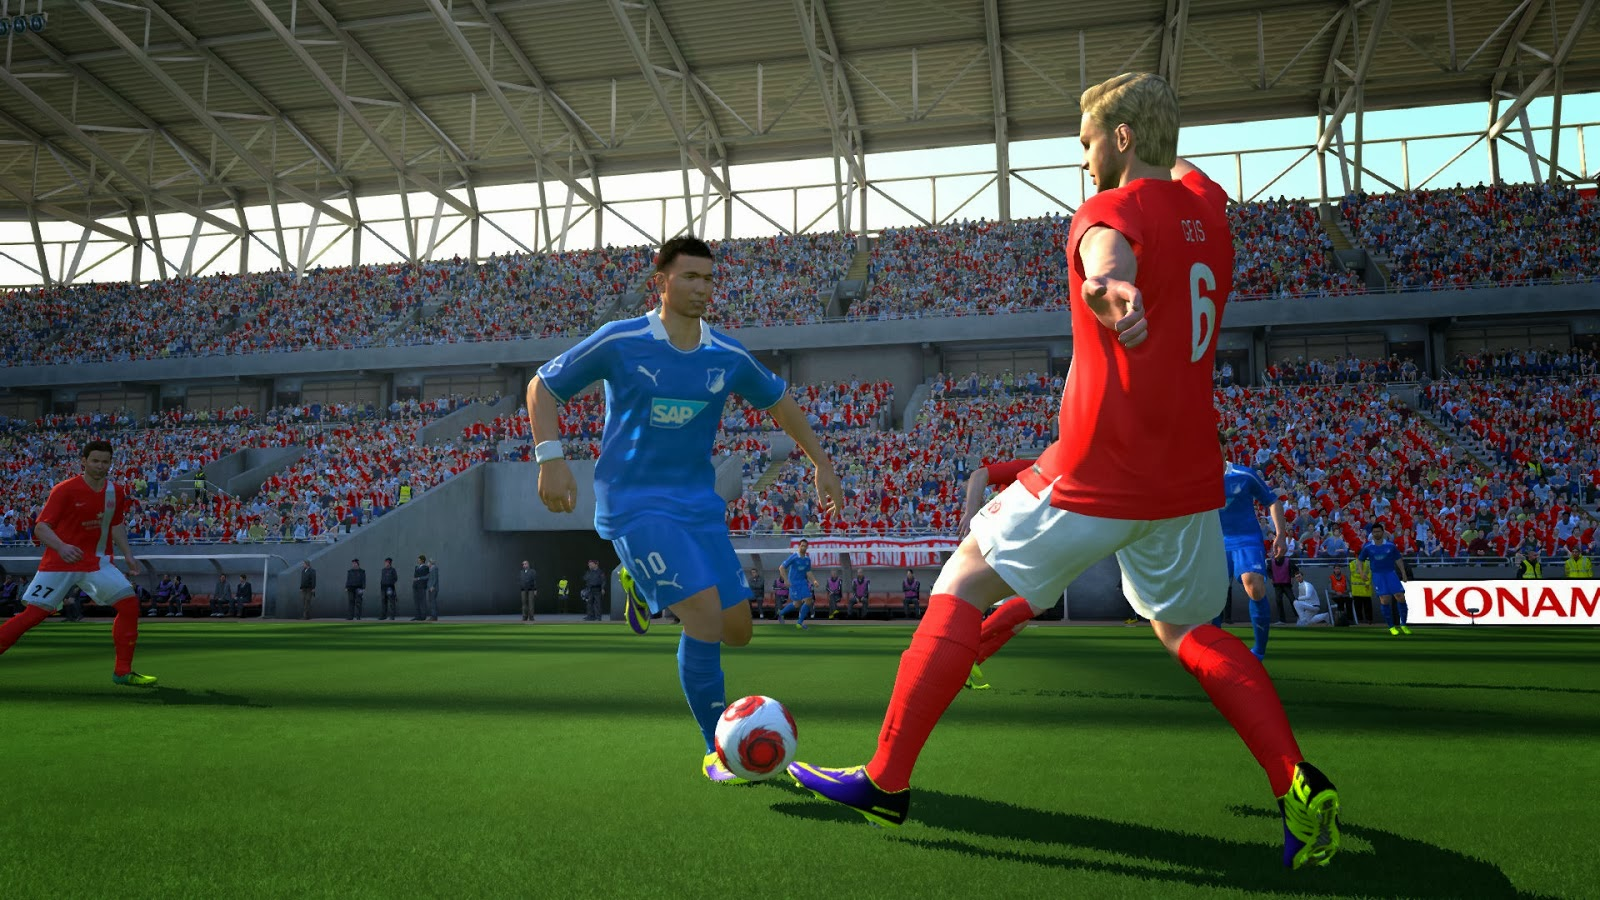 Pes 2014 patch 4 1 free download